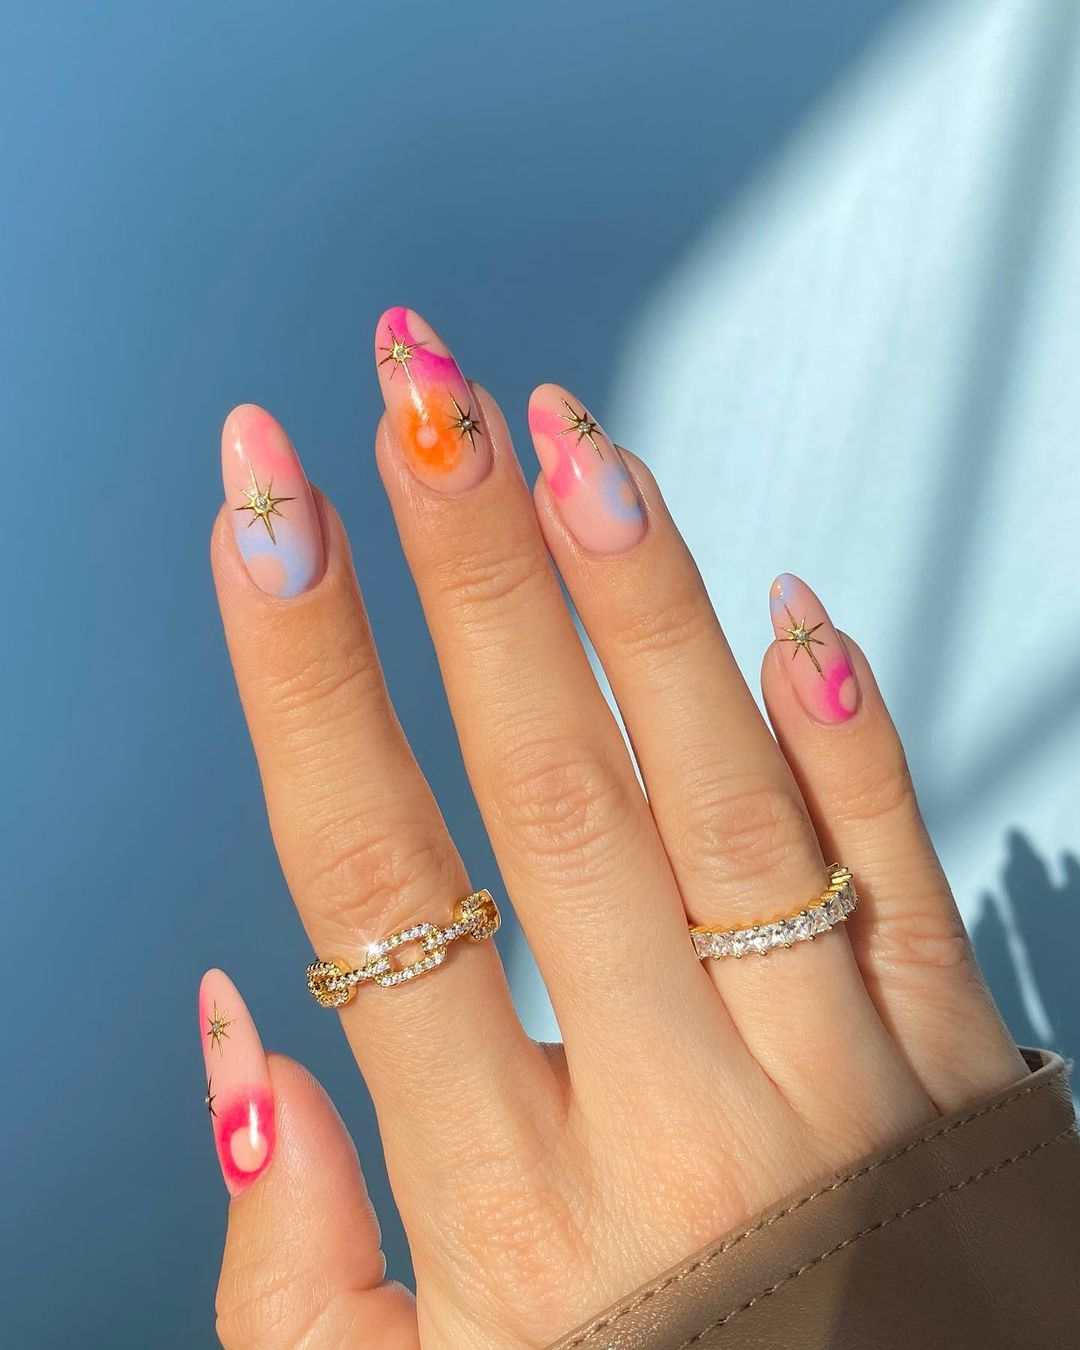 Dainty swirl nails with gold stars